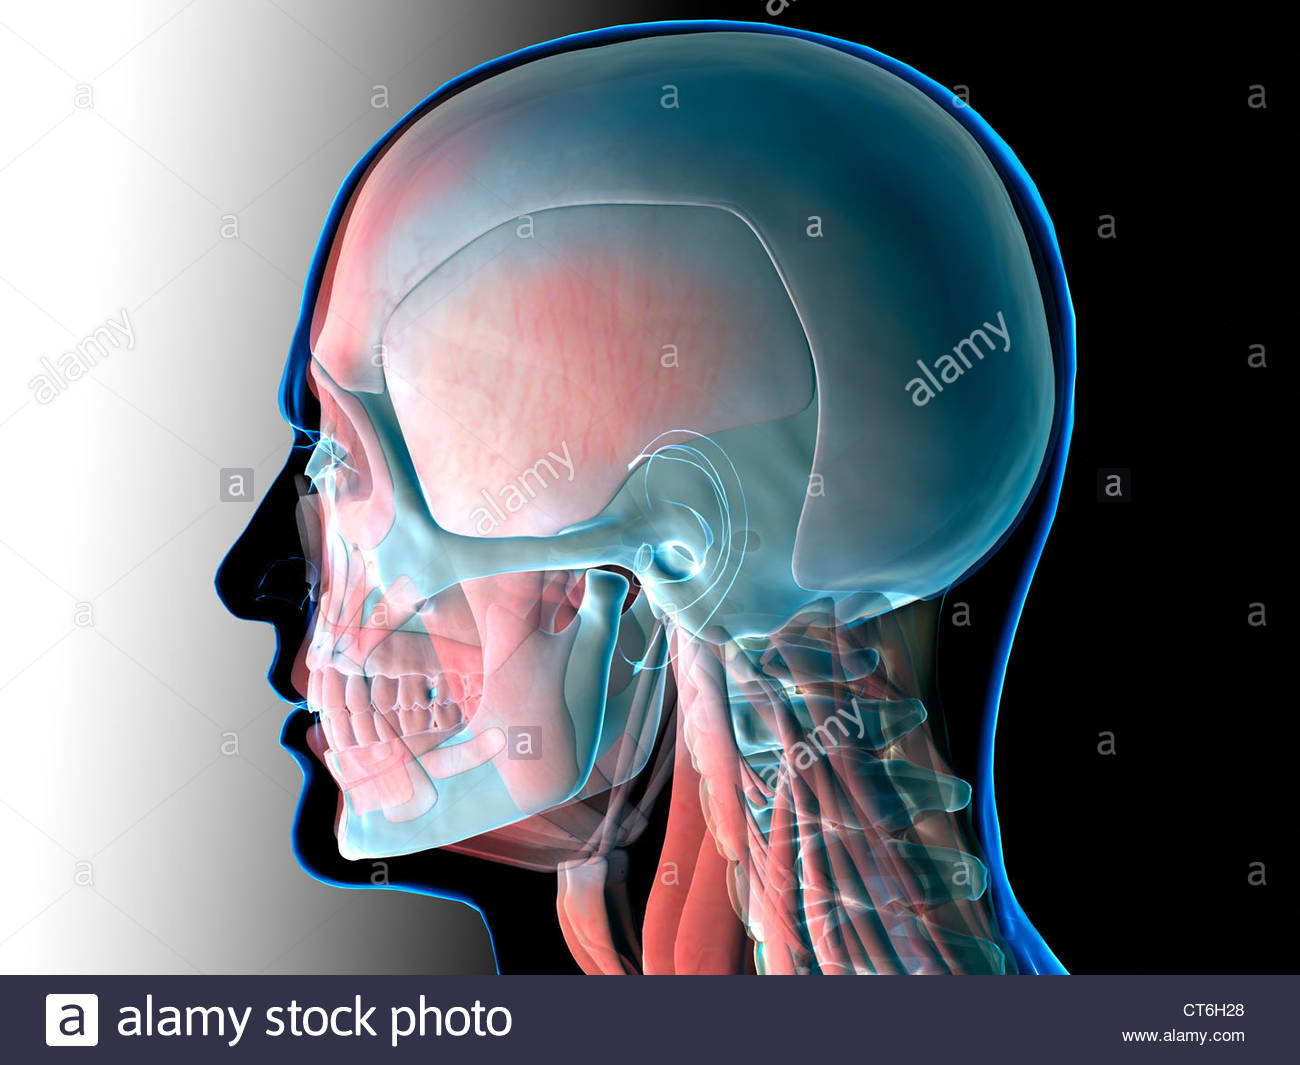 Human Head And Neck Anatomy Stock Photos Human Head And Neck